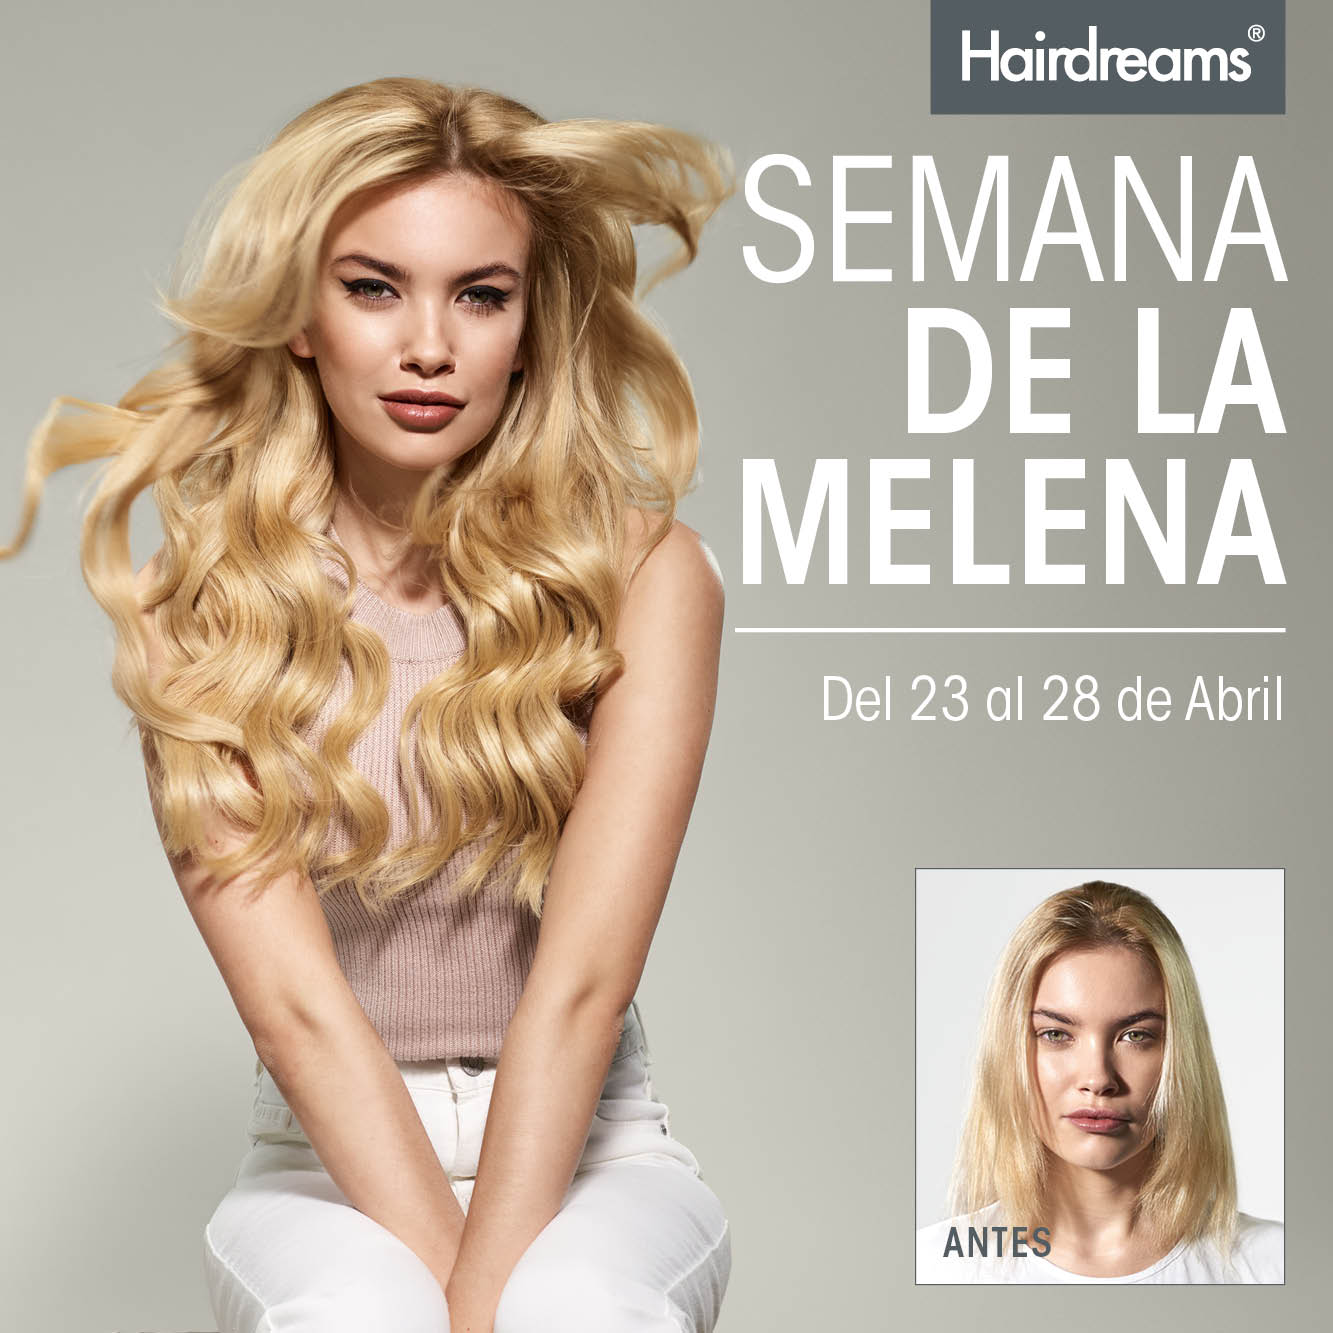 Semana de la melena Hairdreams Extensiones 2018